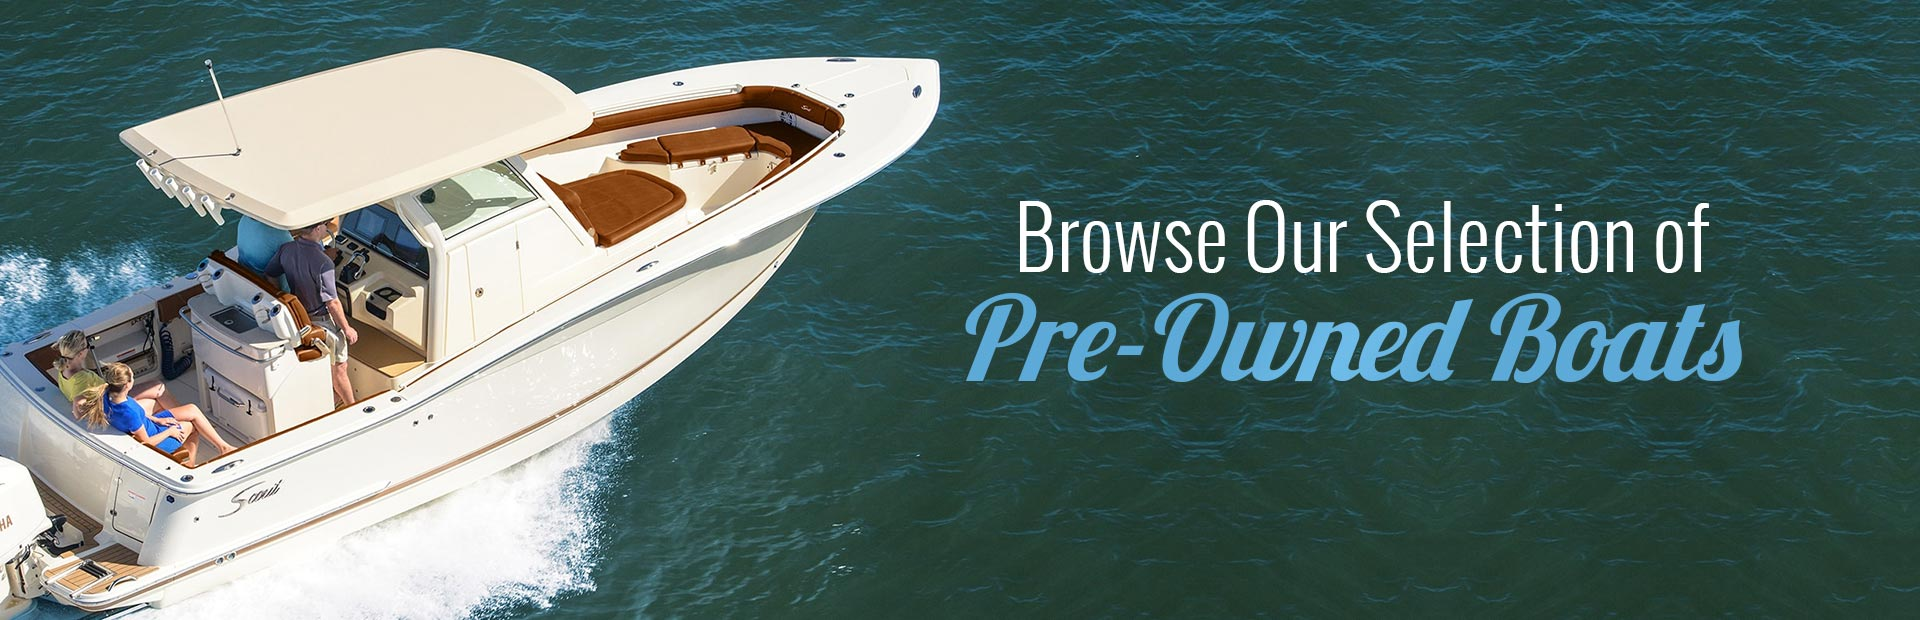 Click here to browse our selection of pre-owned boats.